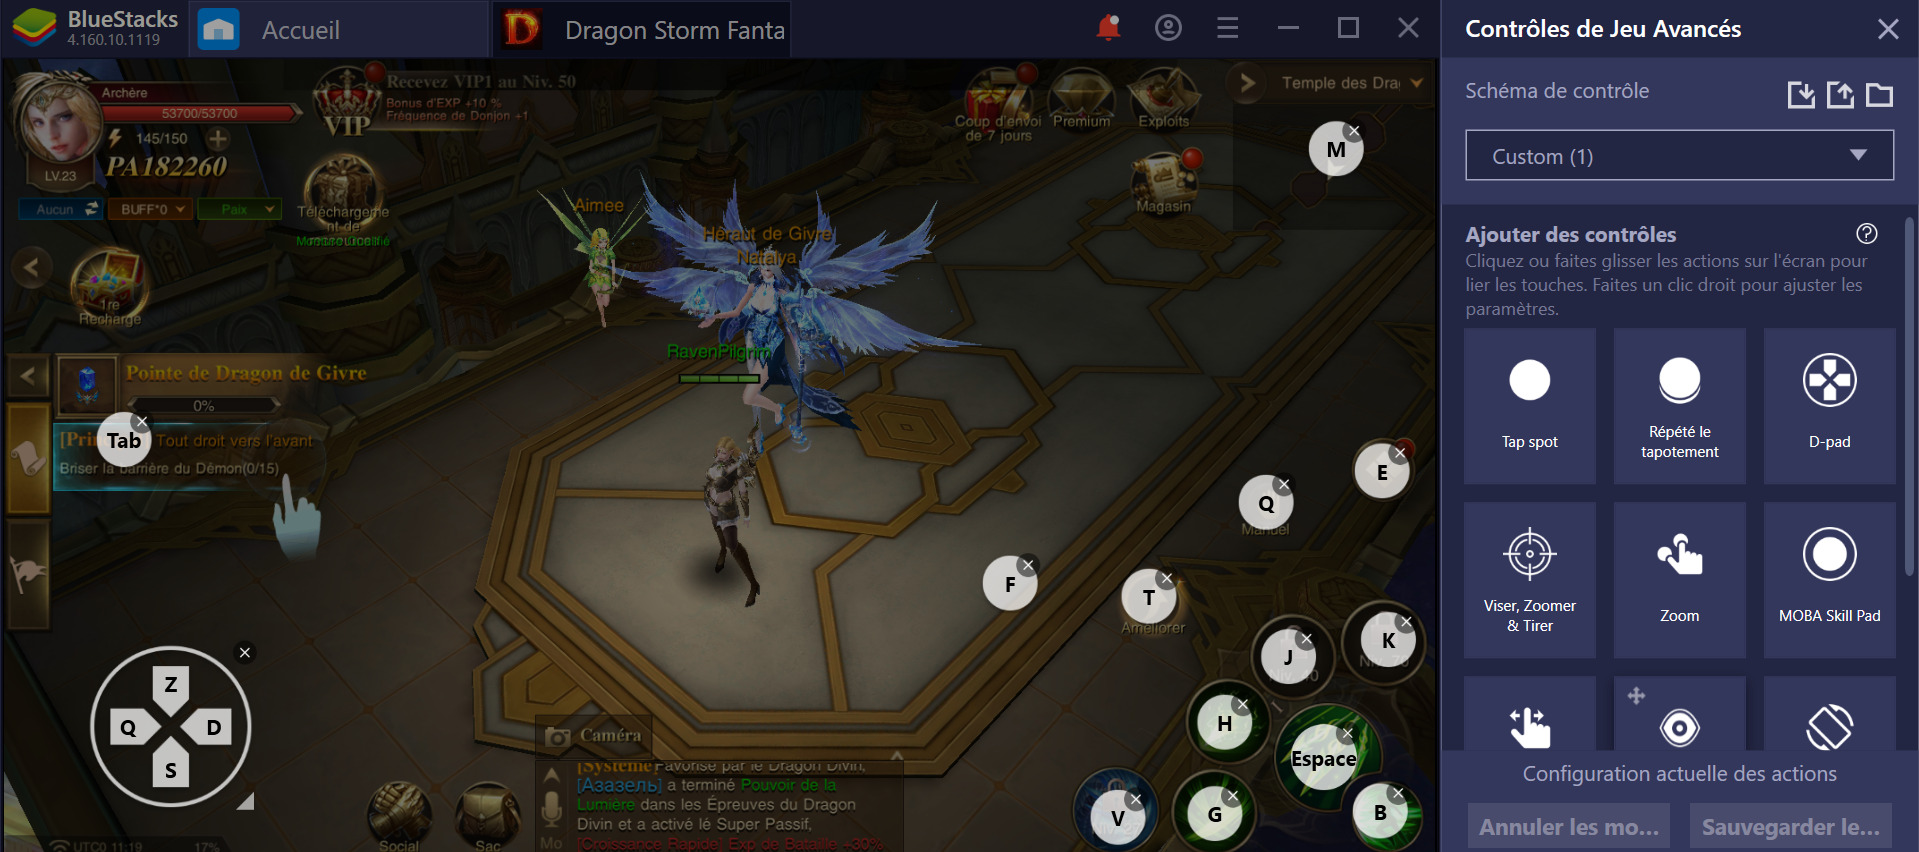 Dragon Storm Fantasy : Comment jouer au jeu sur BlueStacks